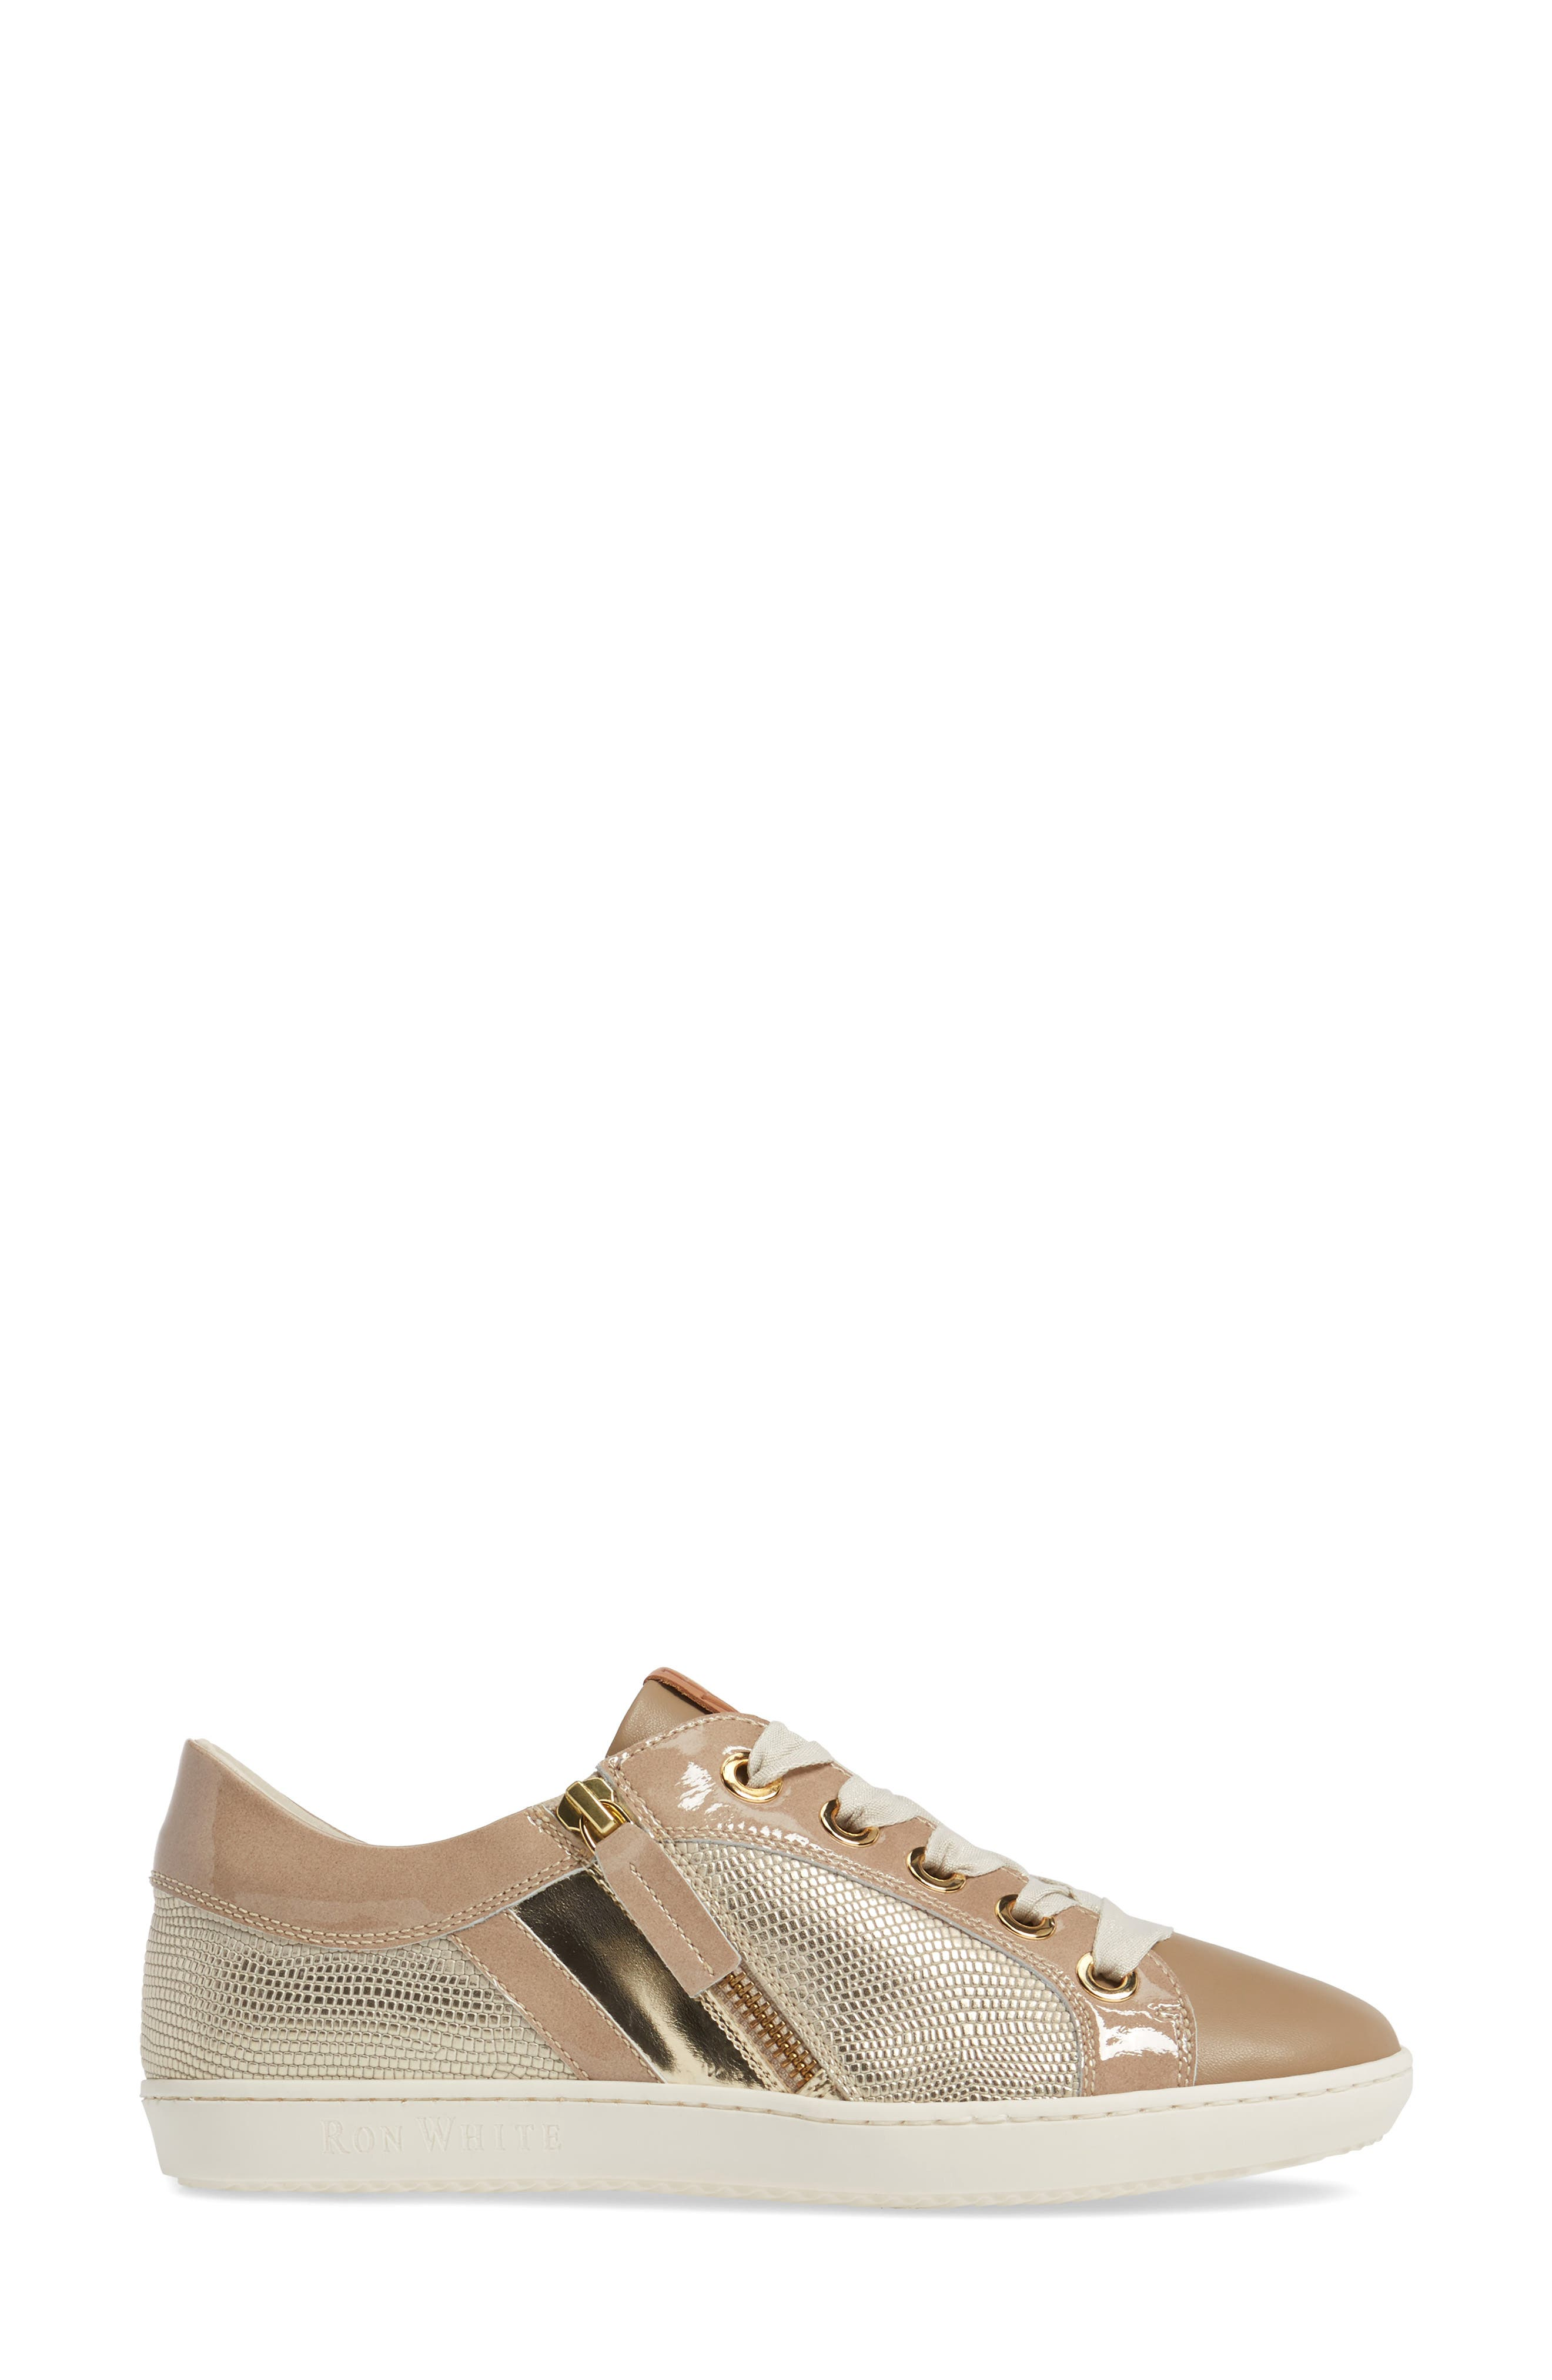 May Sneaker,                             Alternate thumbnail 3, color,                             Nude/ Platino Leather